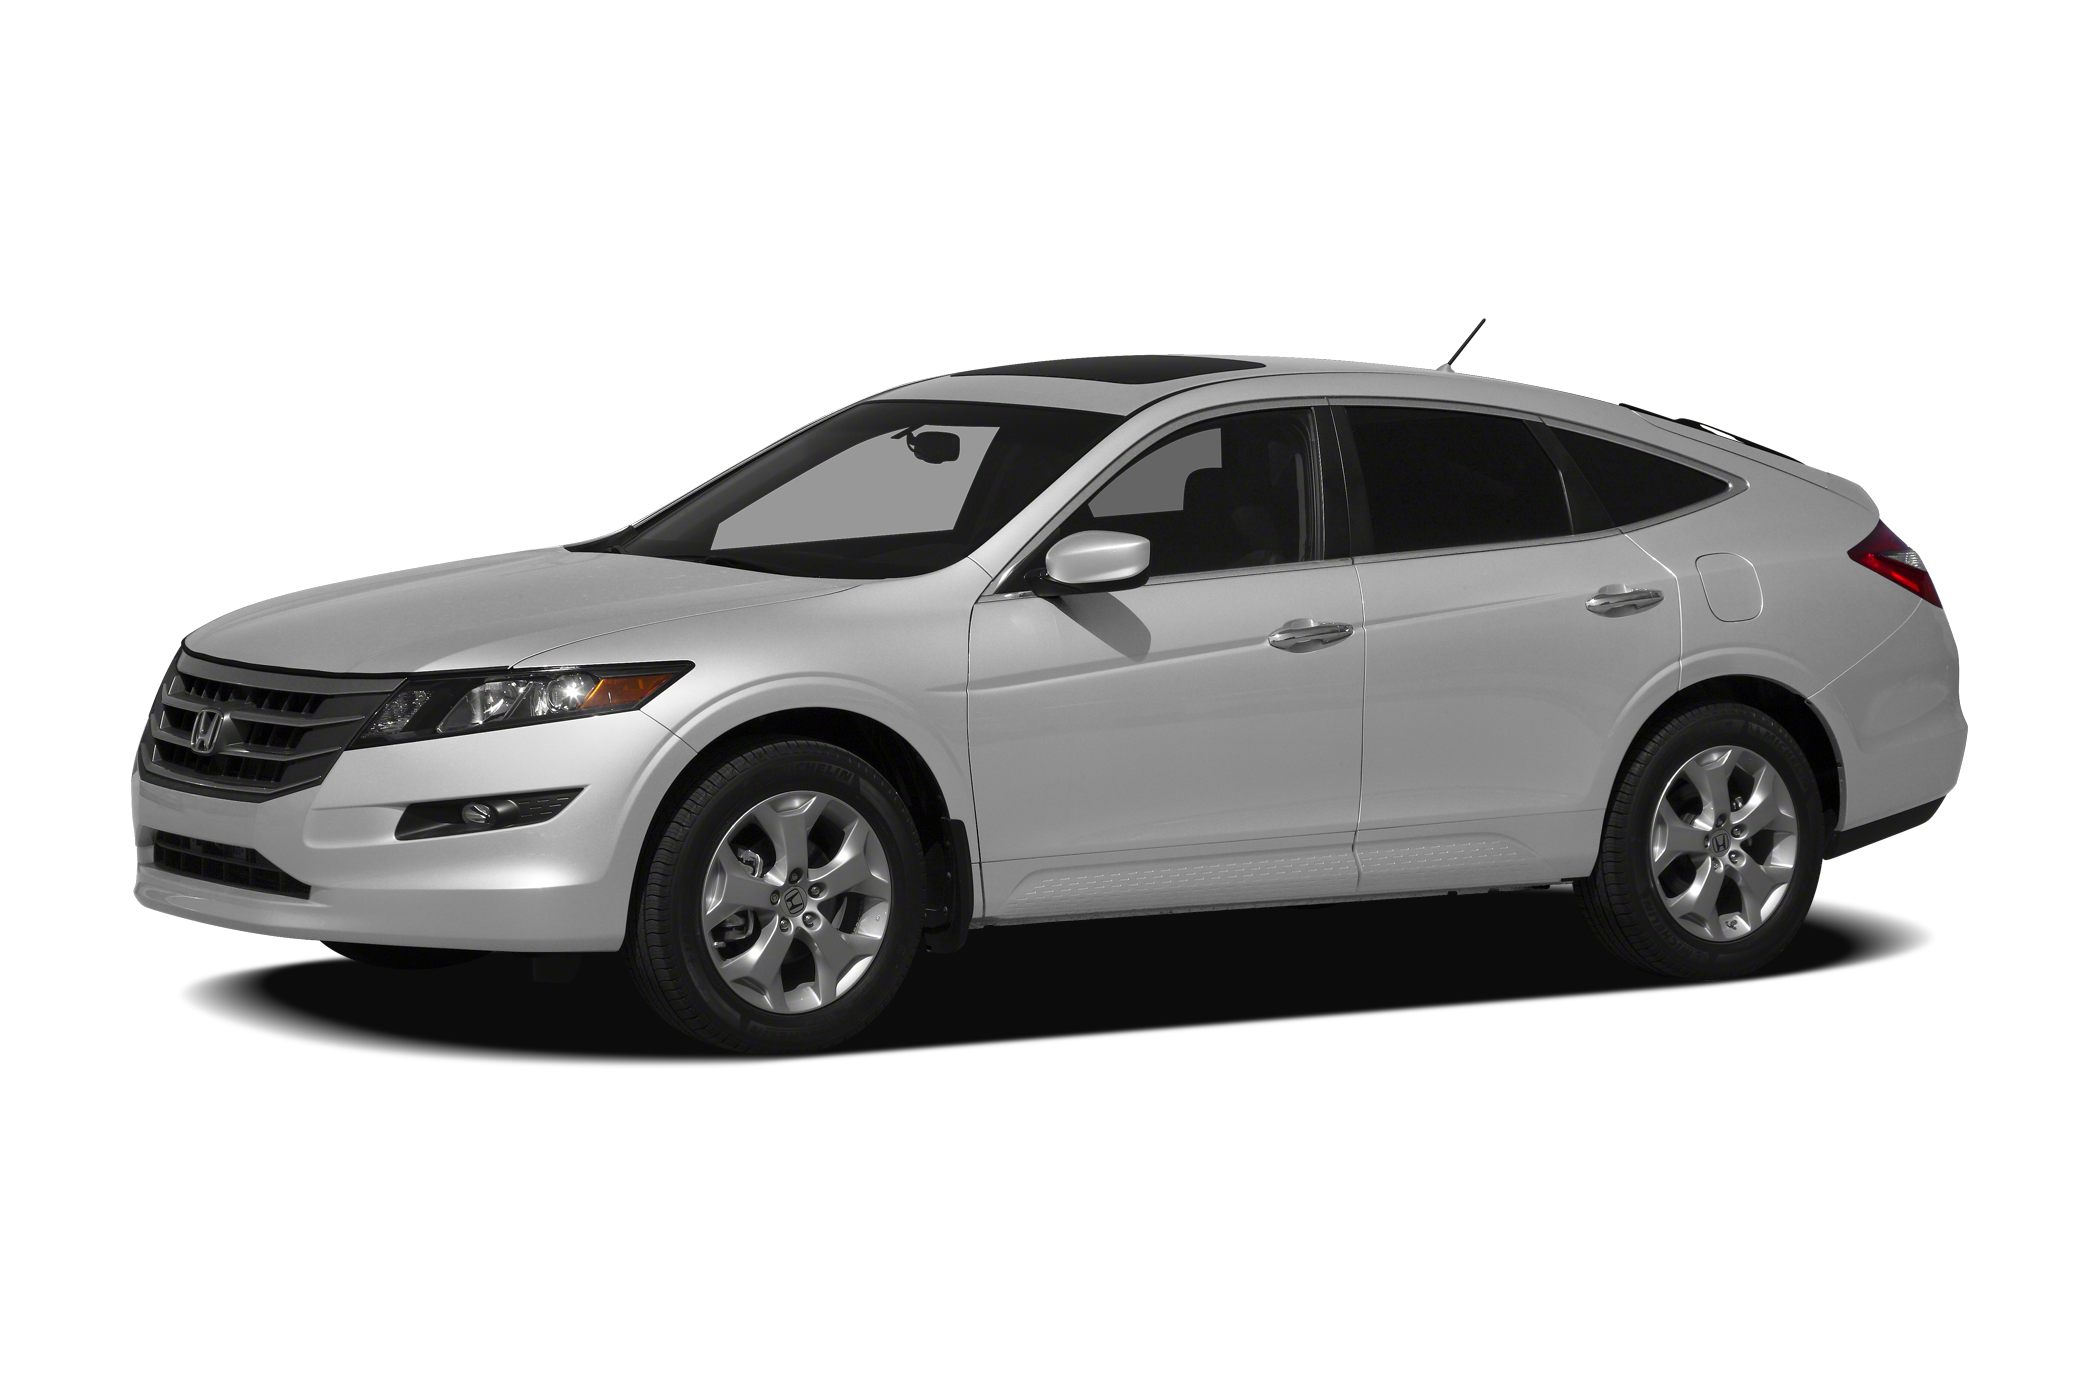 2012 Honda Crosstour EX-L Wagon for sale in Troy for $23,495 with 1 miles.